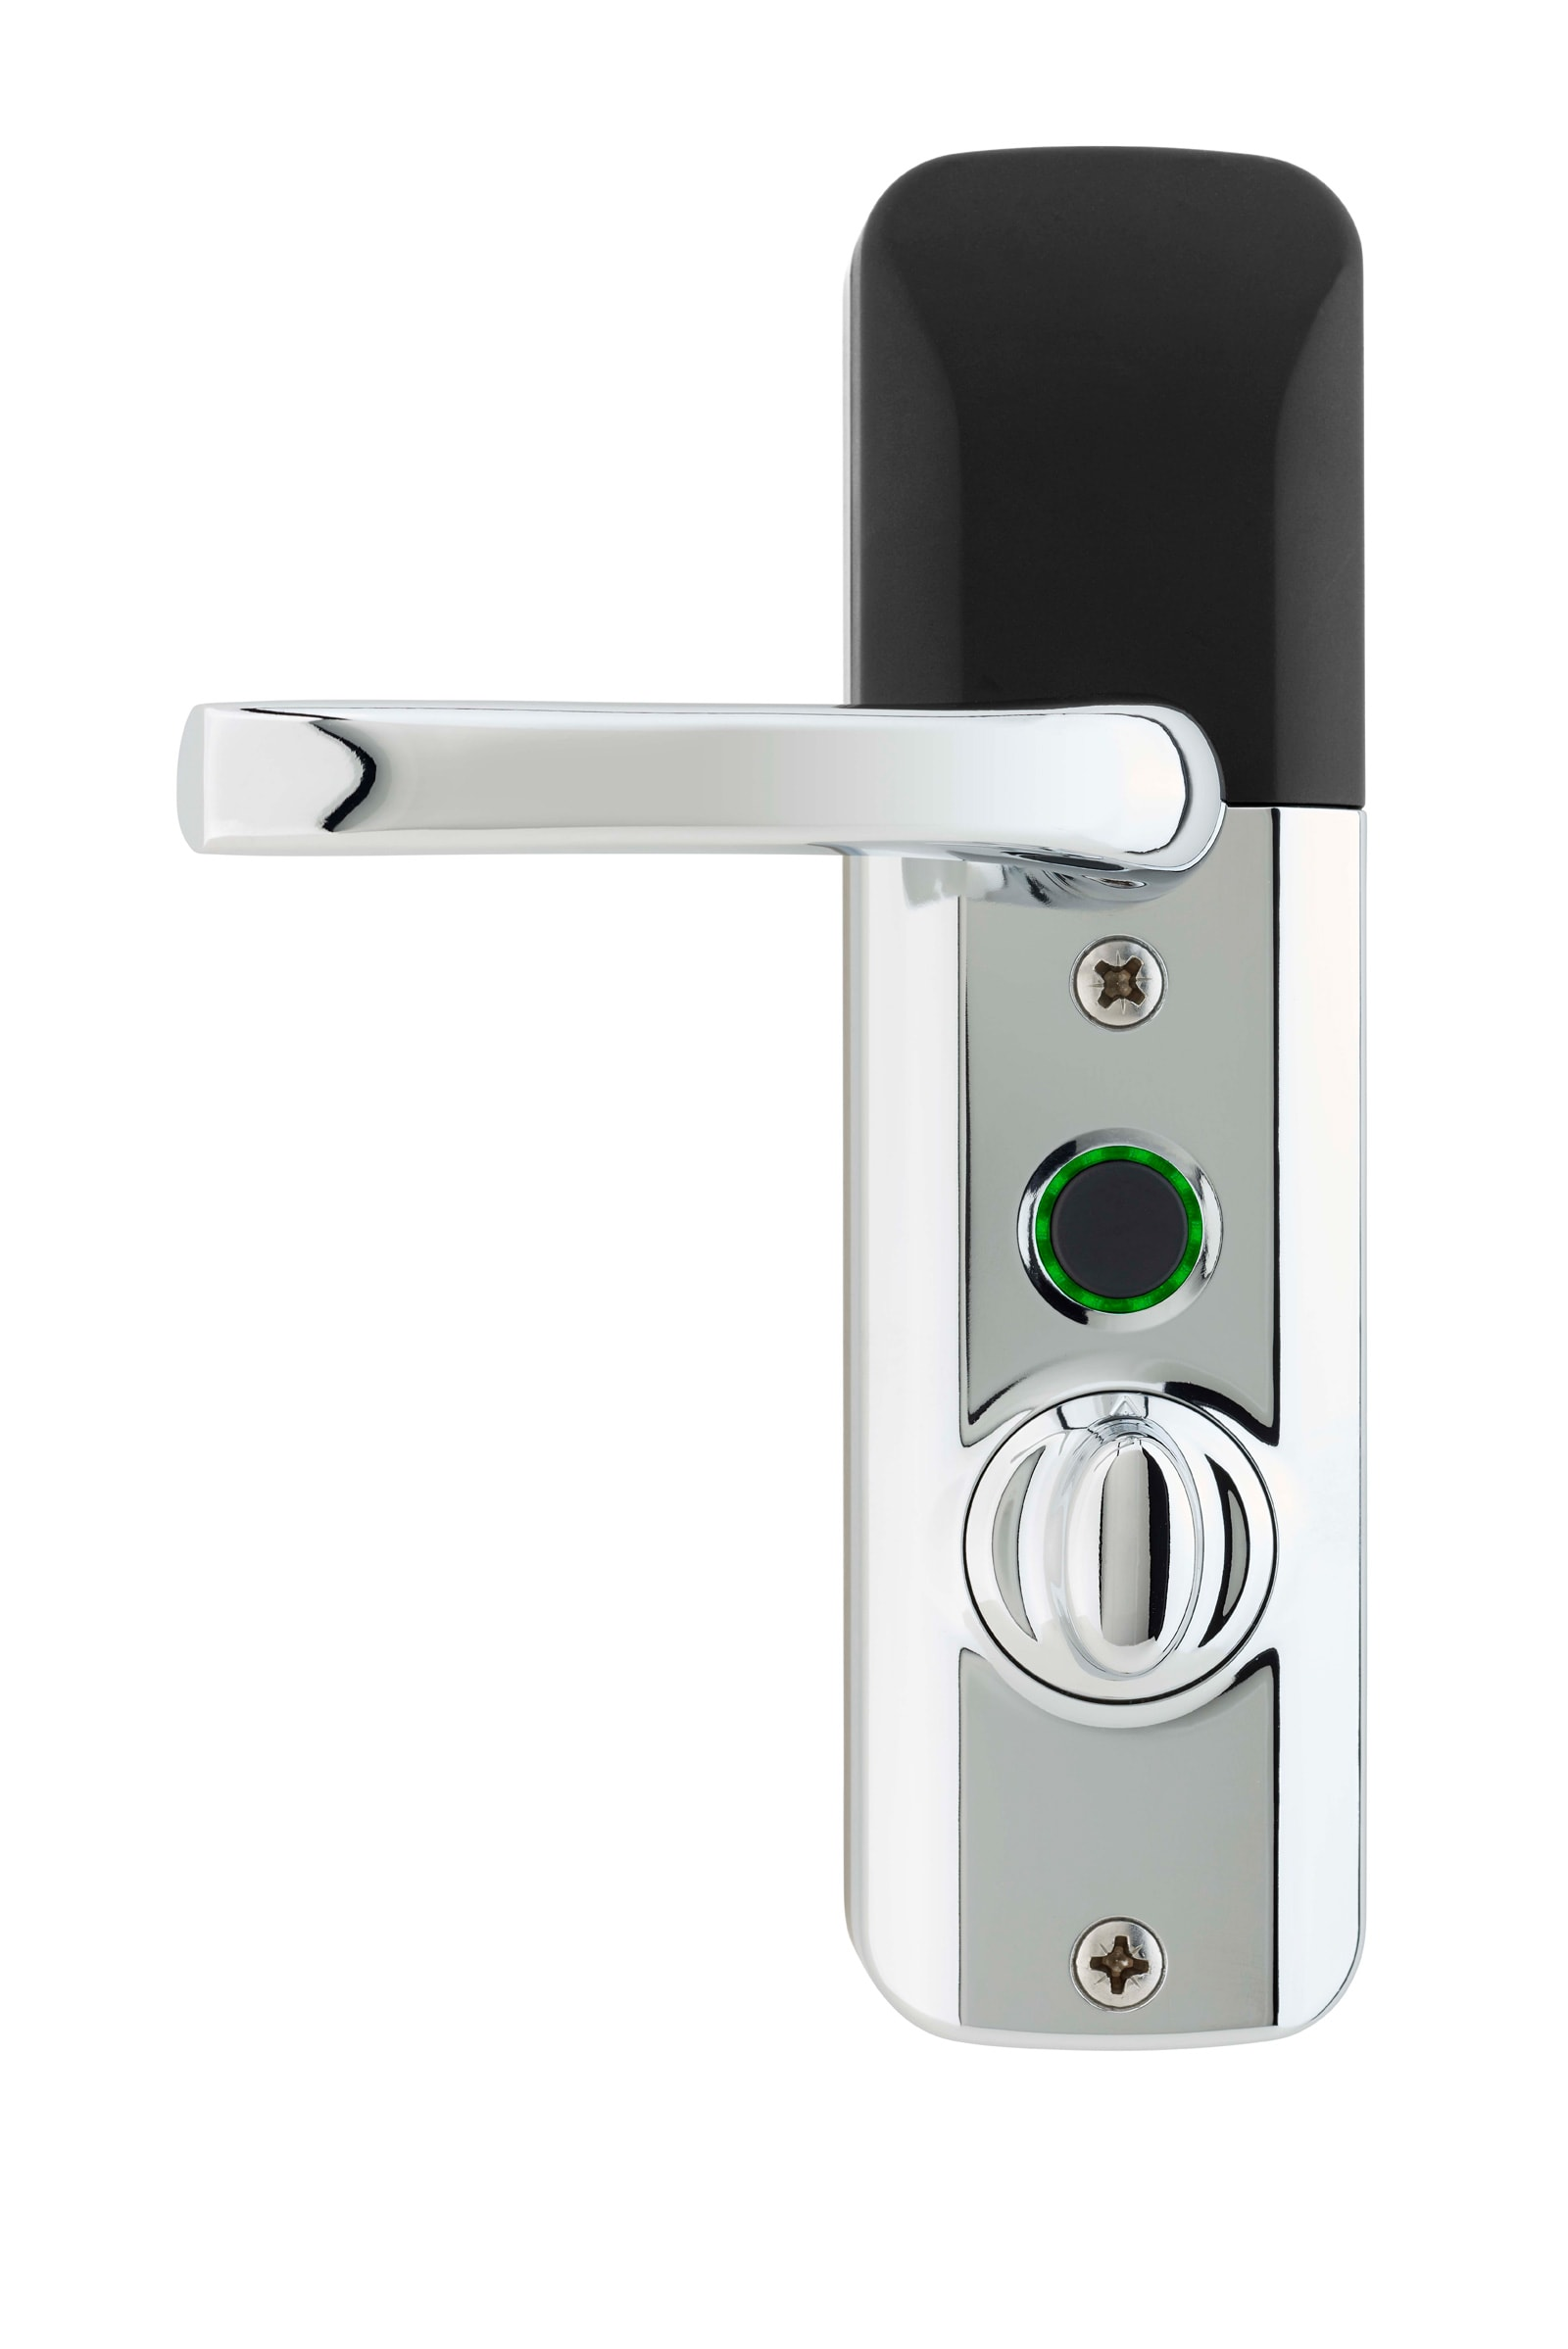 Mighton Products Avid secure smart lock